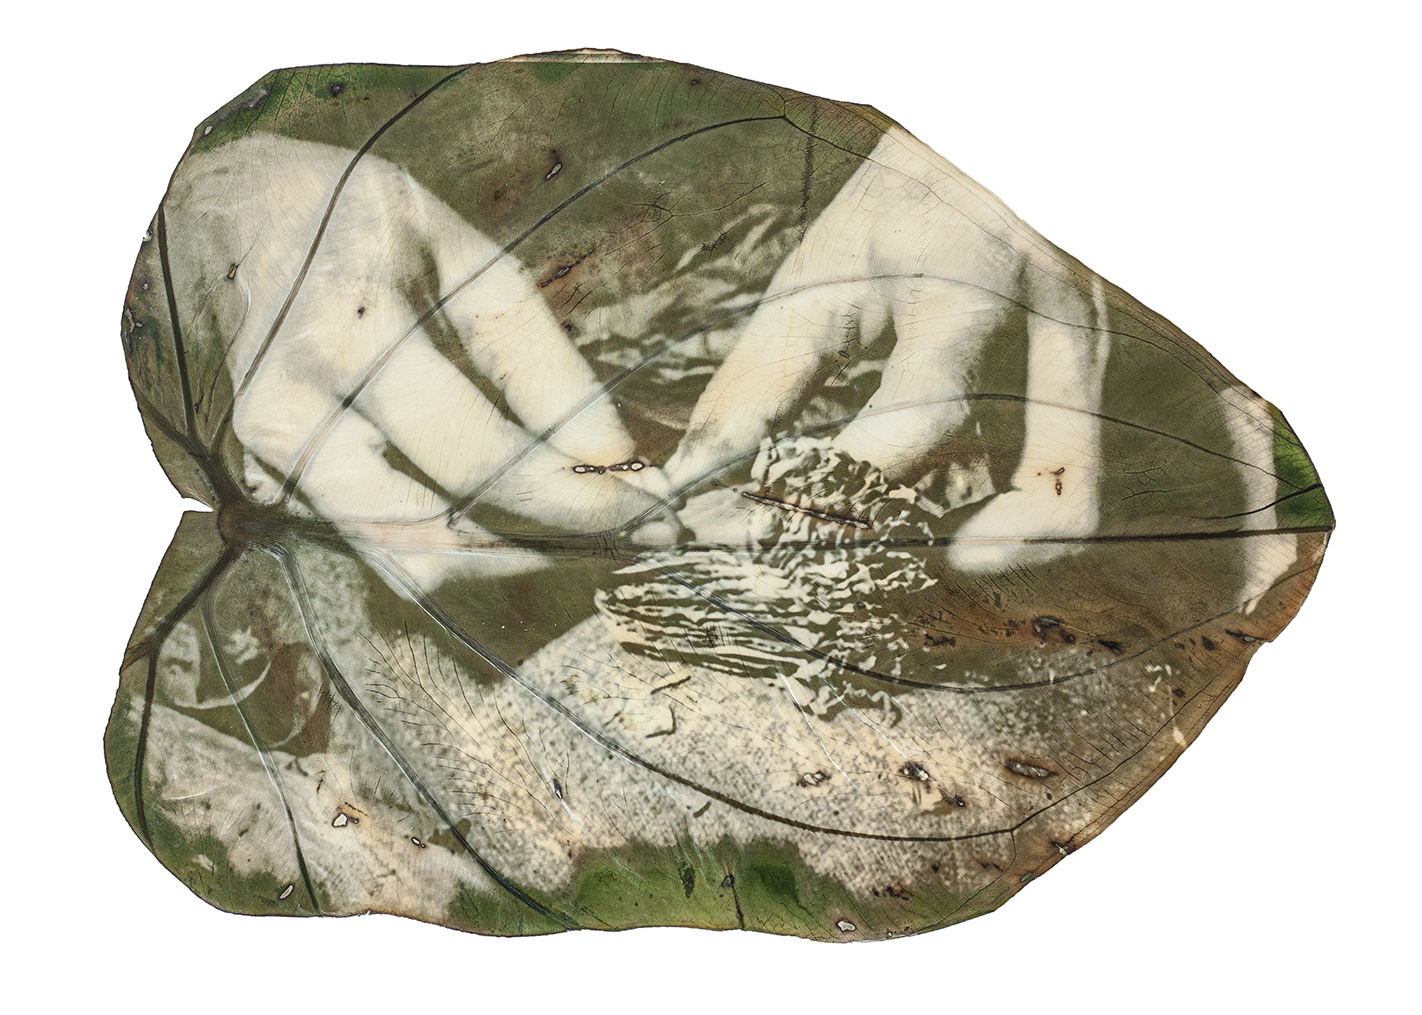 A green and white image of hands printed on a large leaf.